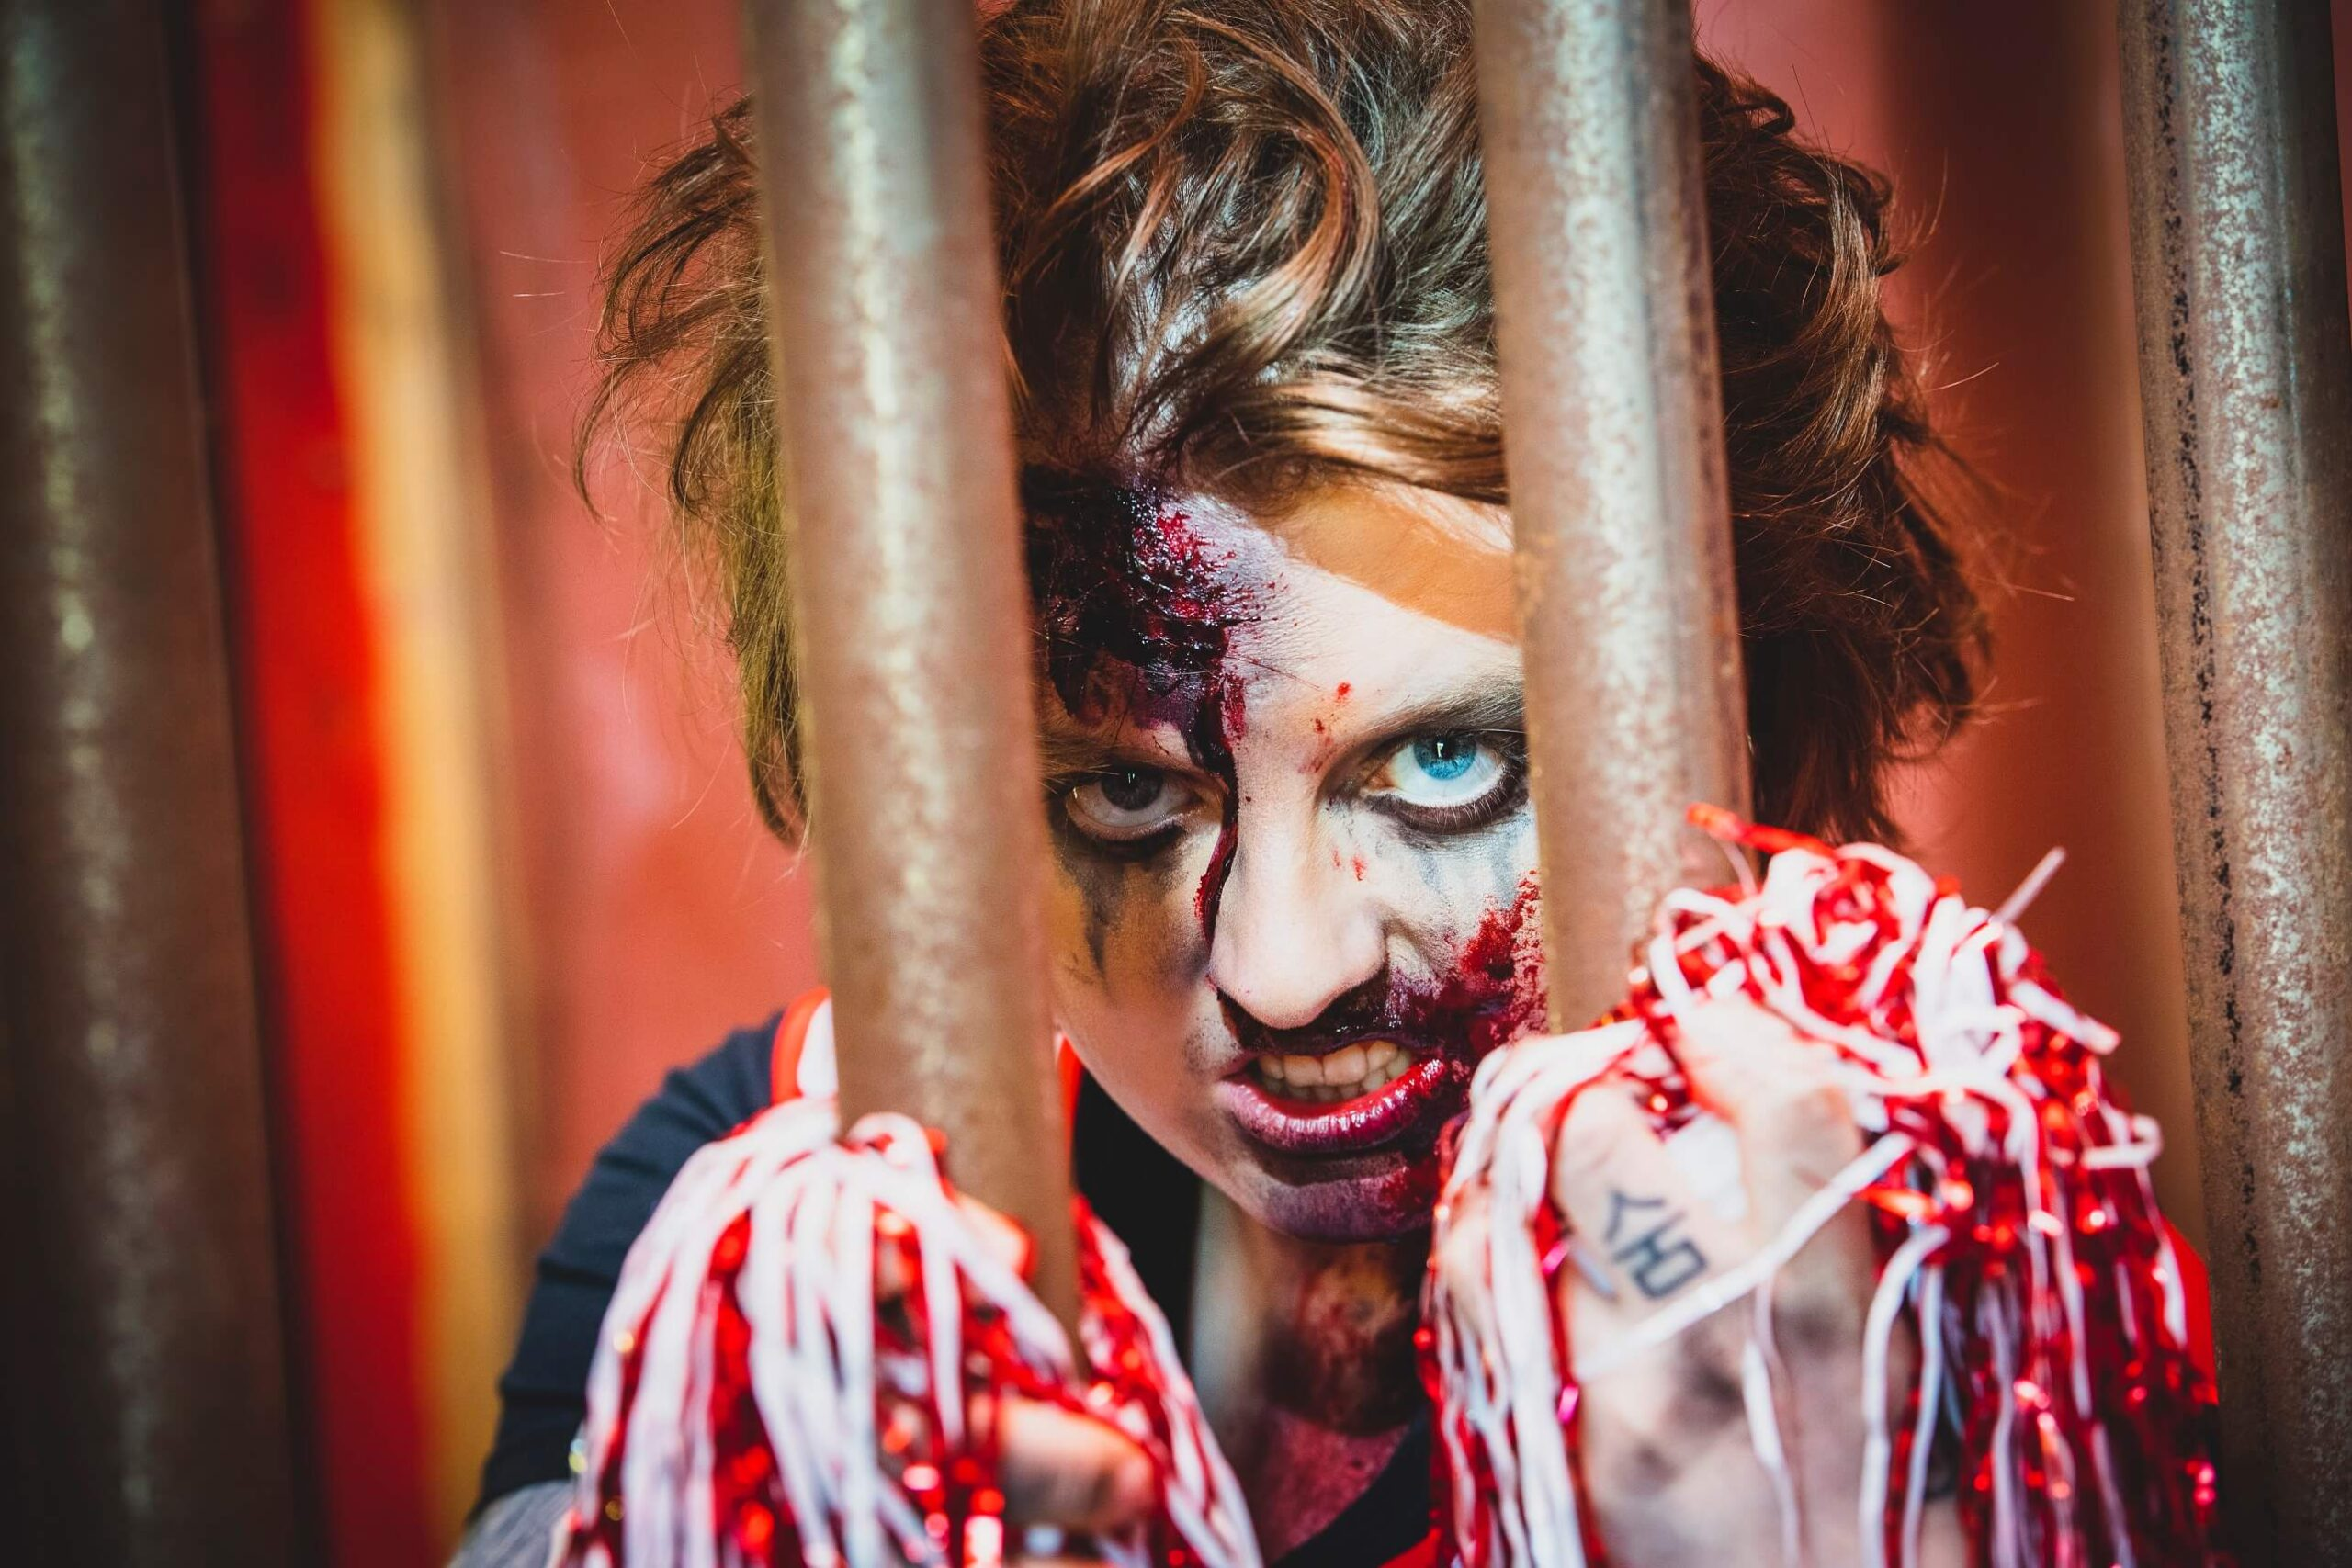 Zombie cheerleader holding onto the bars of a cage with blood on her face